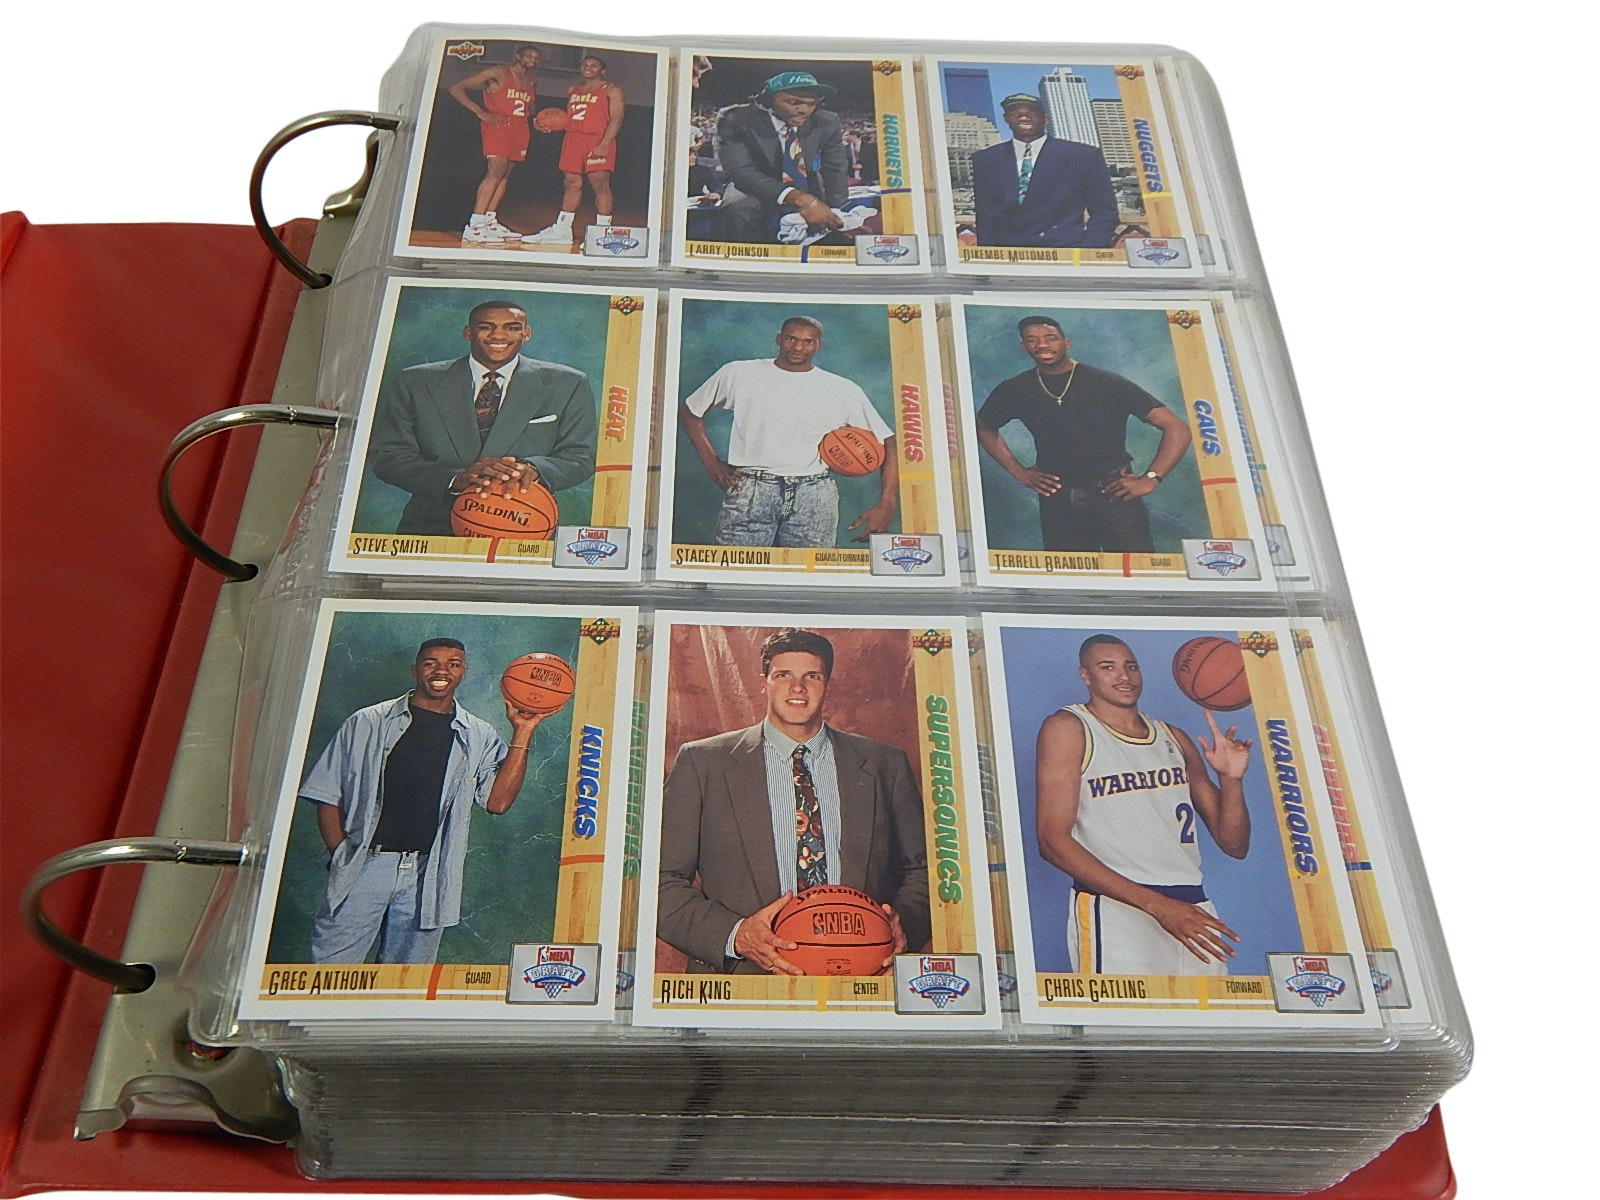 Large Album of Basketball Sets from 1990s with Jordan, Bird, Stockton and More